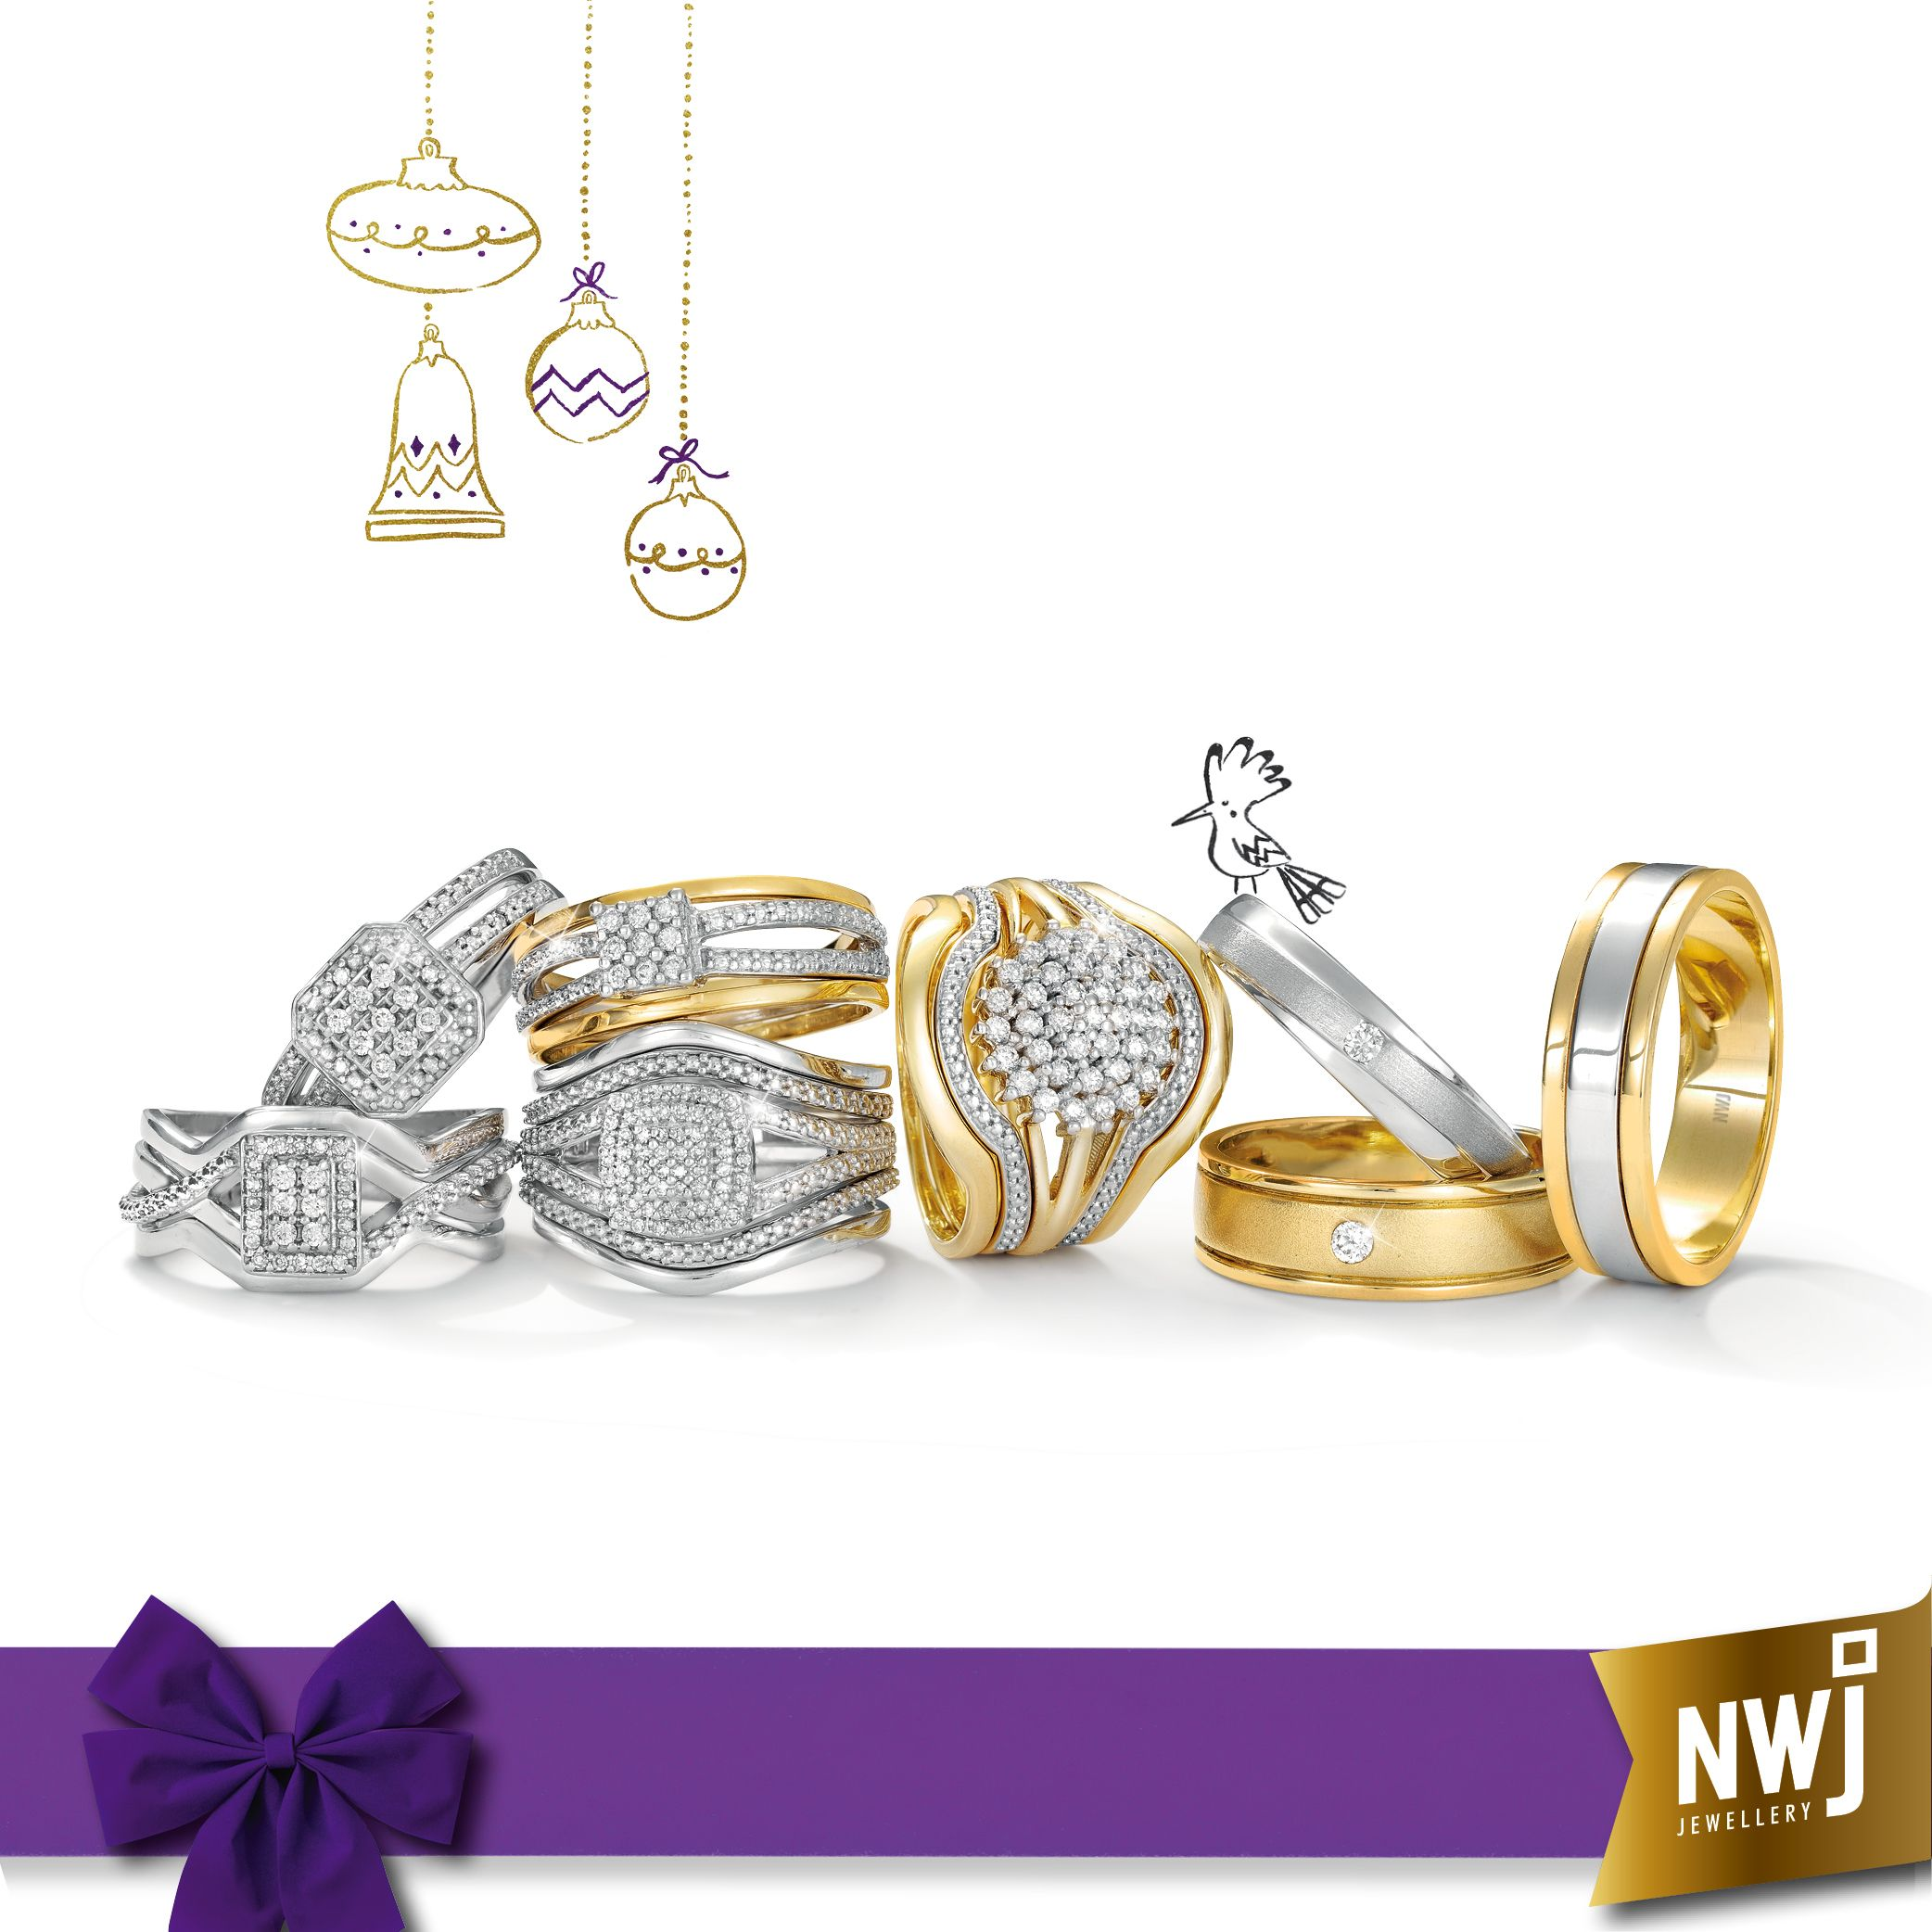 Make this a Christmas to remember forever with a wide range of